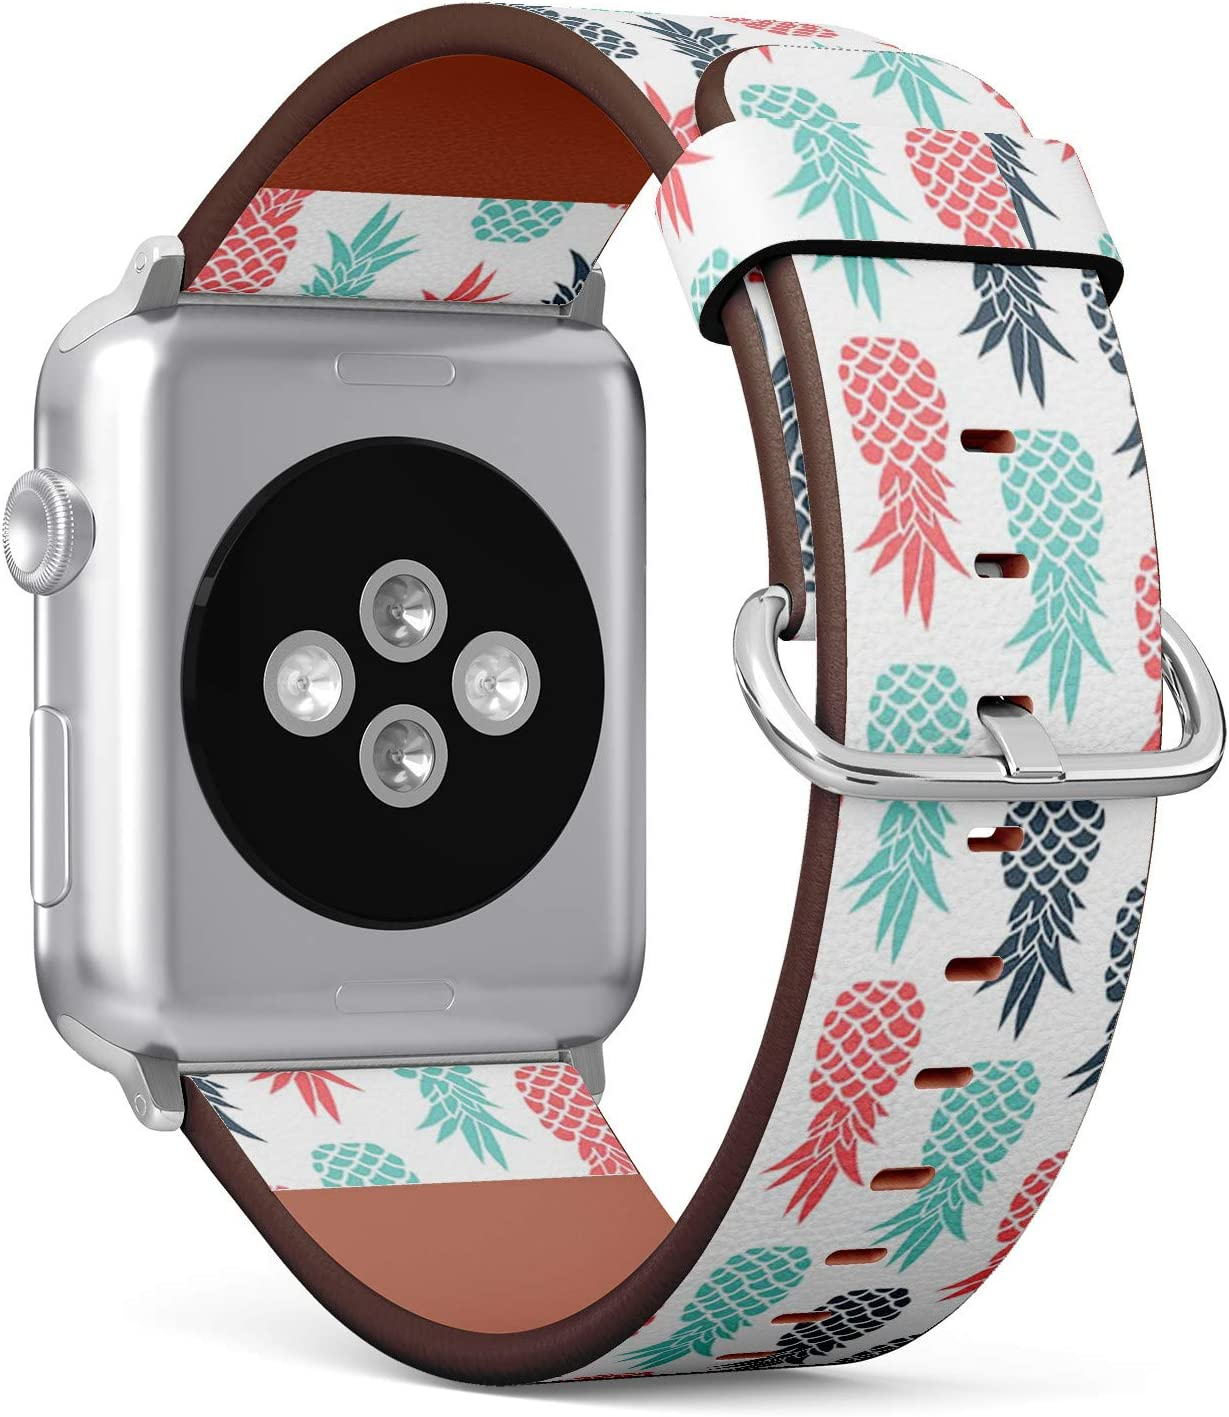 Compatible with Apple Watch (Small Version) 38 / 40mm Leather Wristband Bracelet with Stainless Steel Clasp and Adapters - Pineapple Fruit